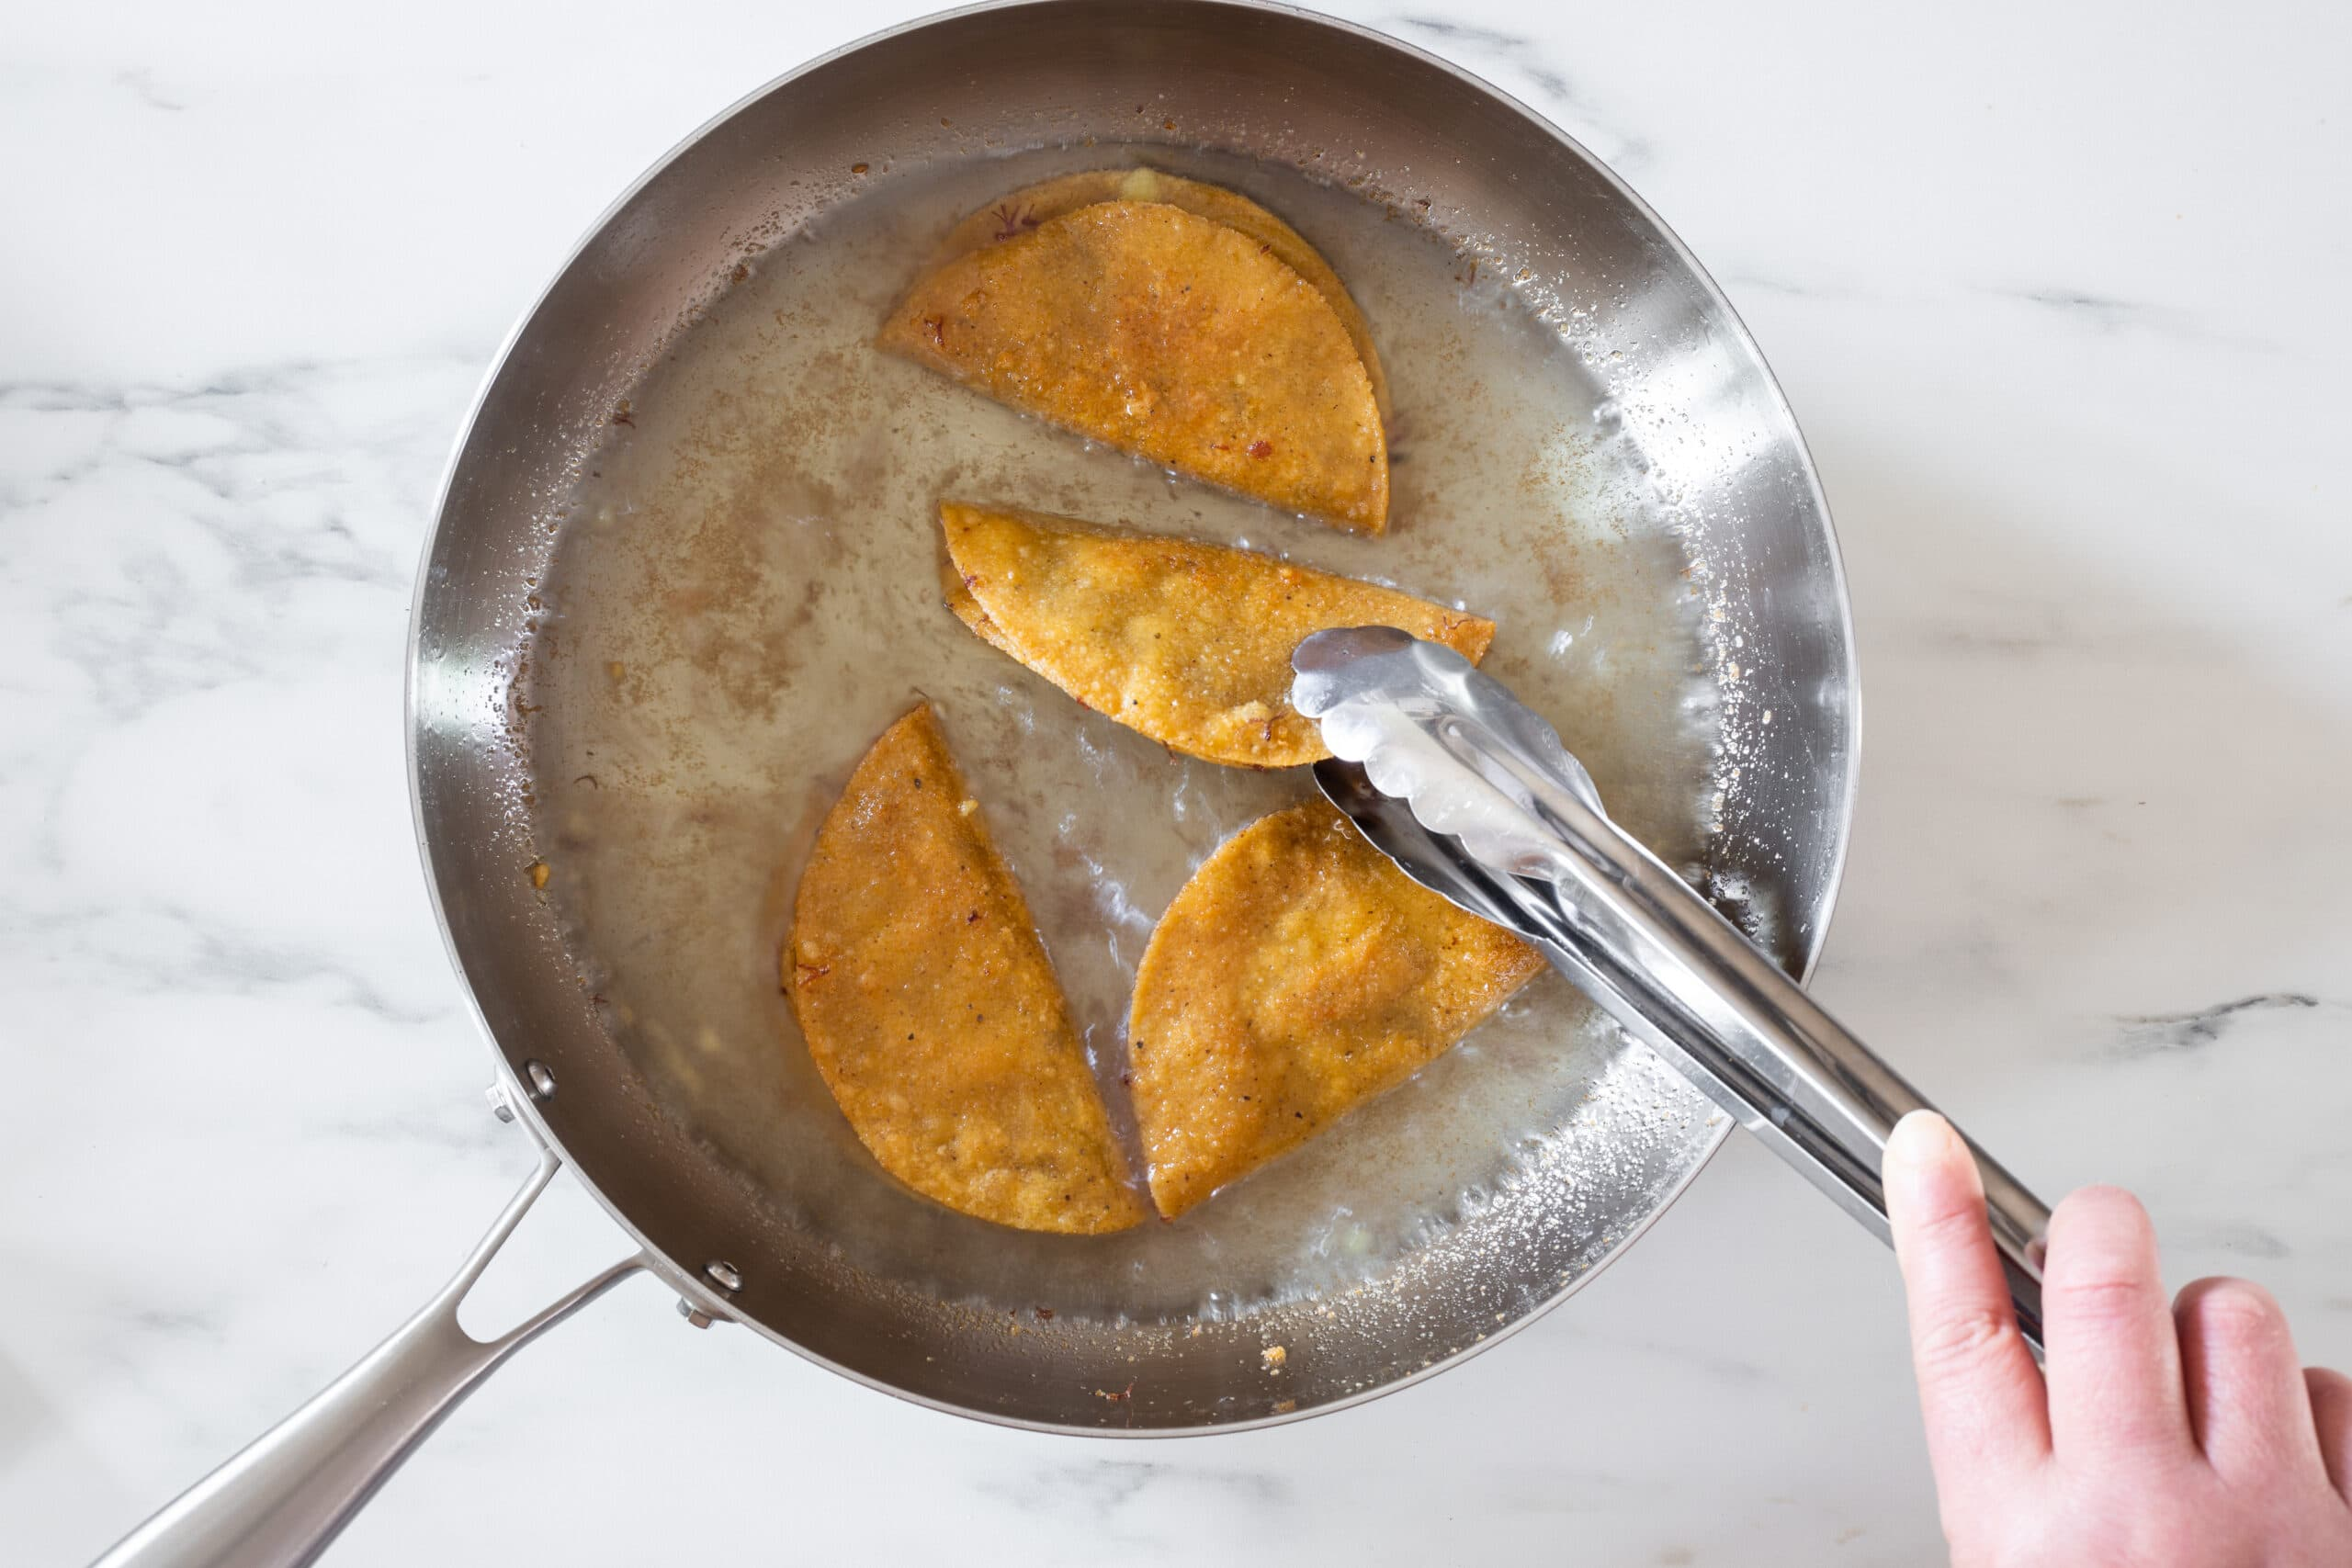 Frying tacos on a pan.